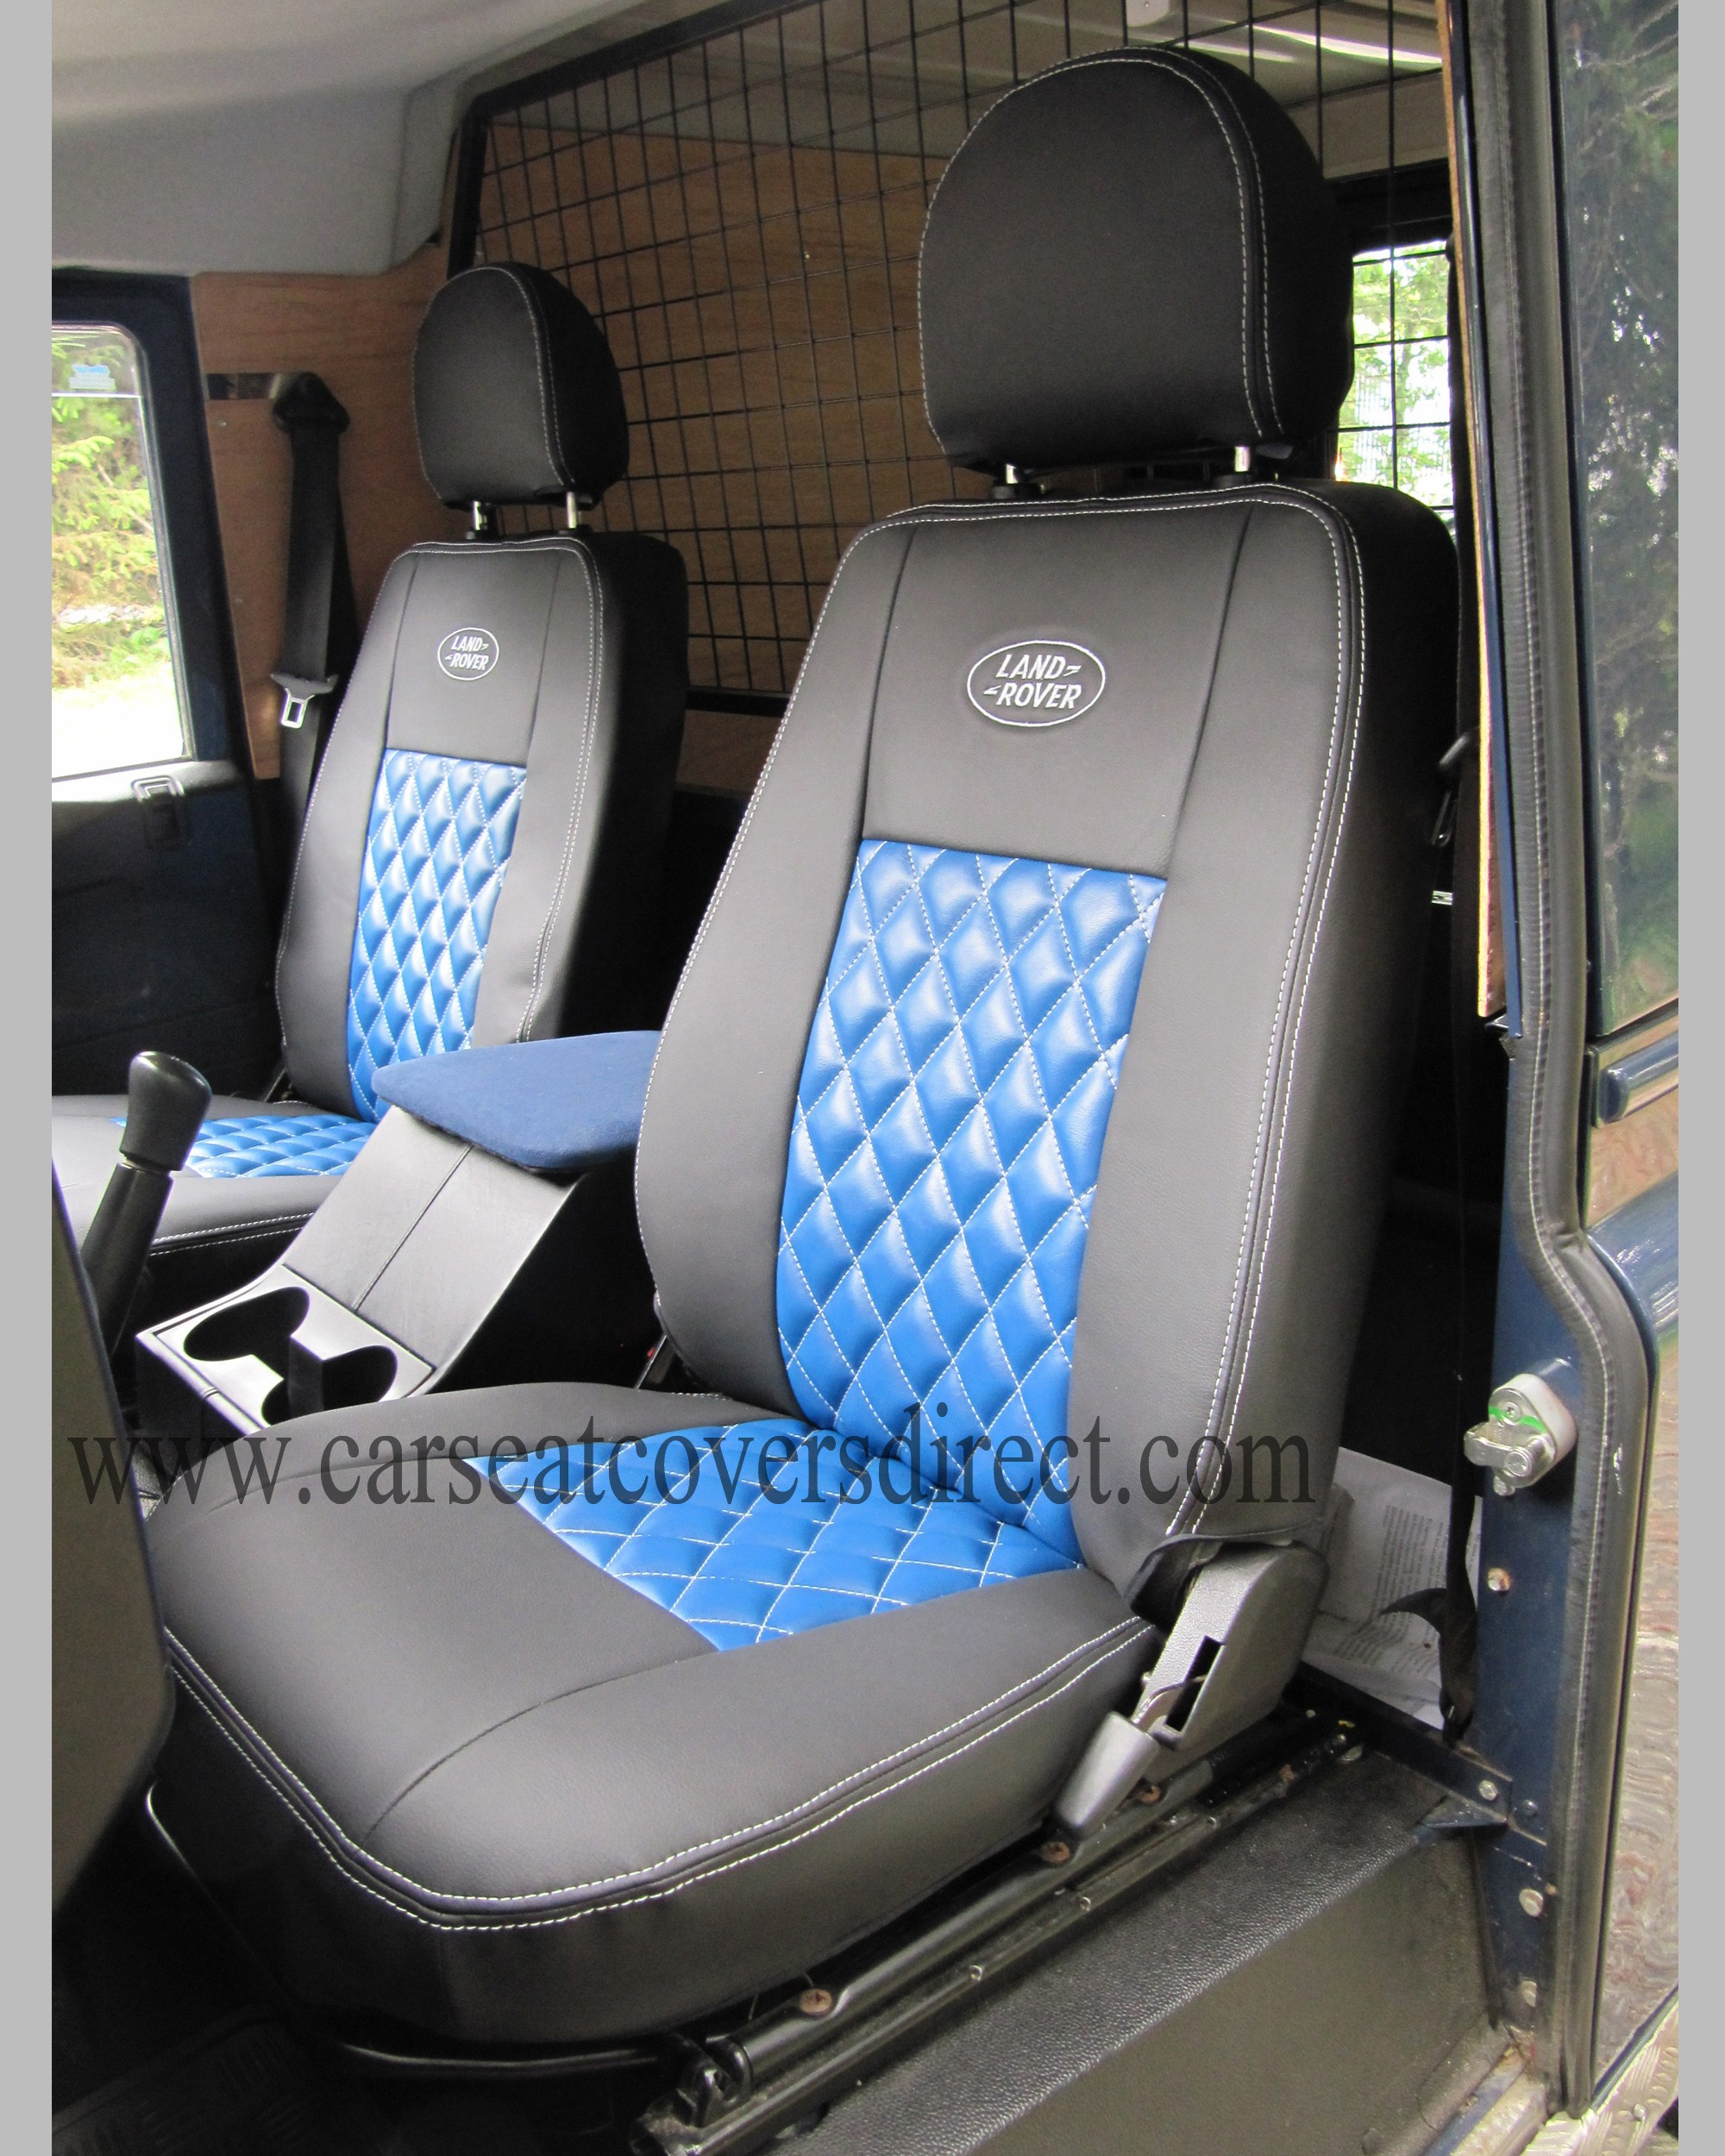 LANDROVER DEFENDER Blue Diamonds seat covers